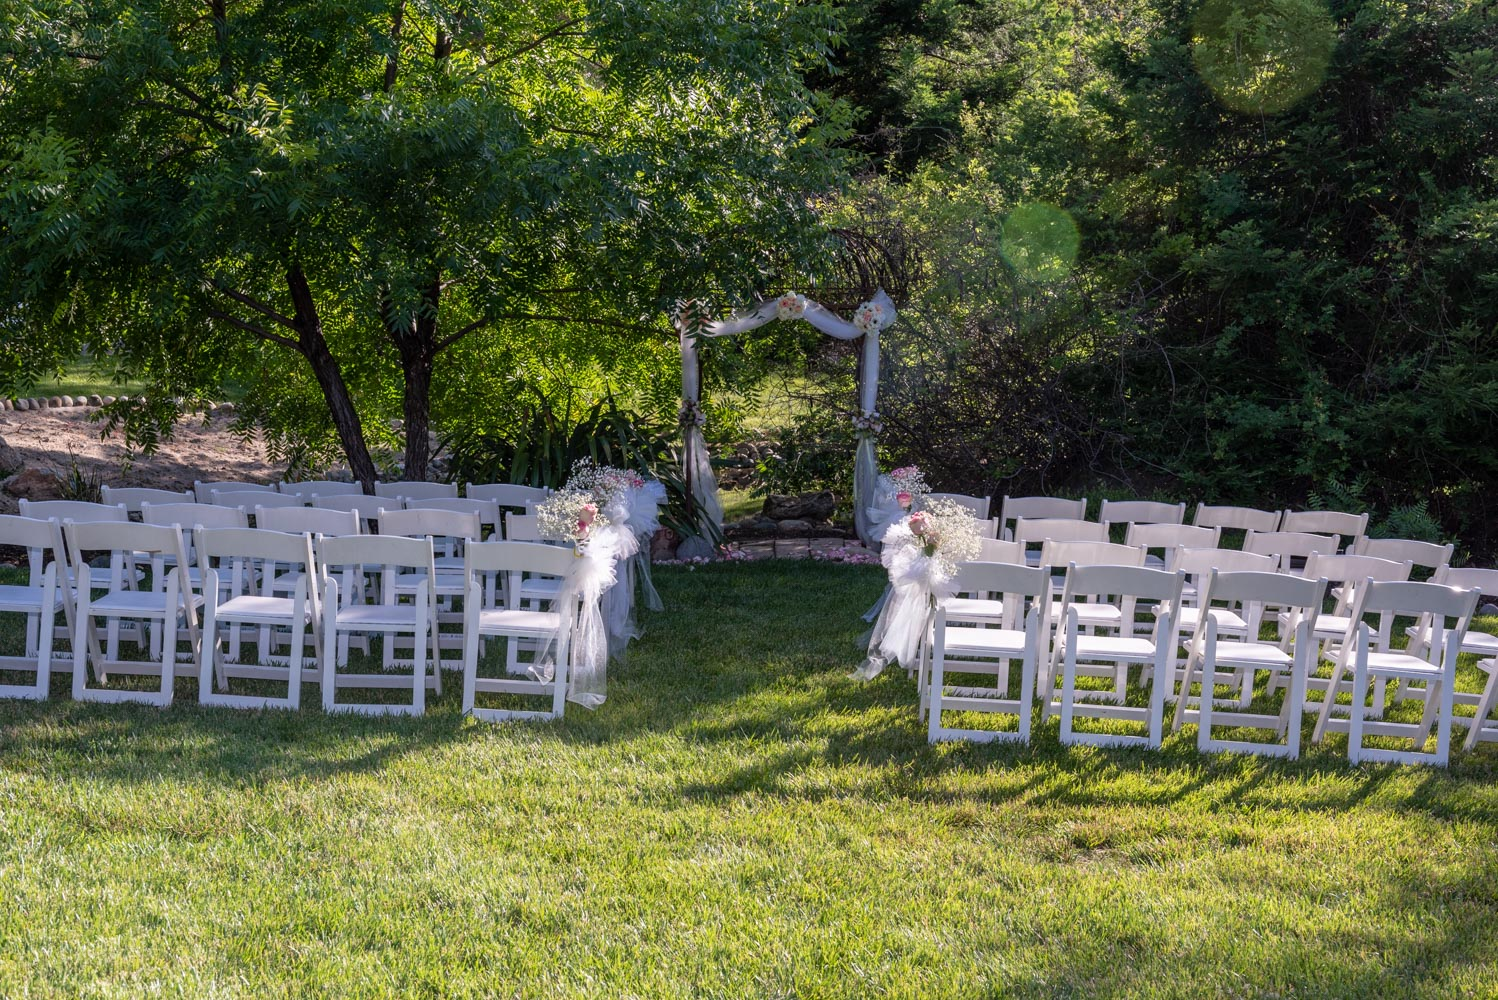 Garden ceremony site, with white chairs and decorated wedding arch